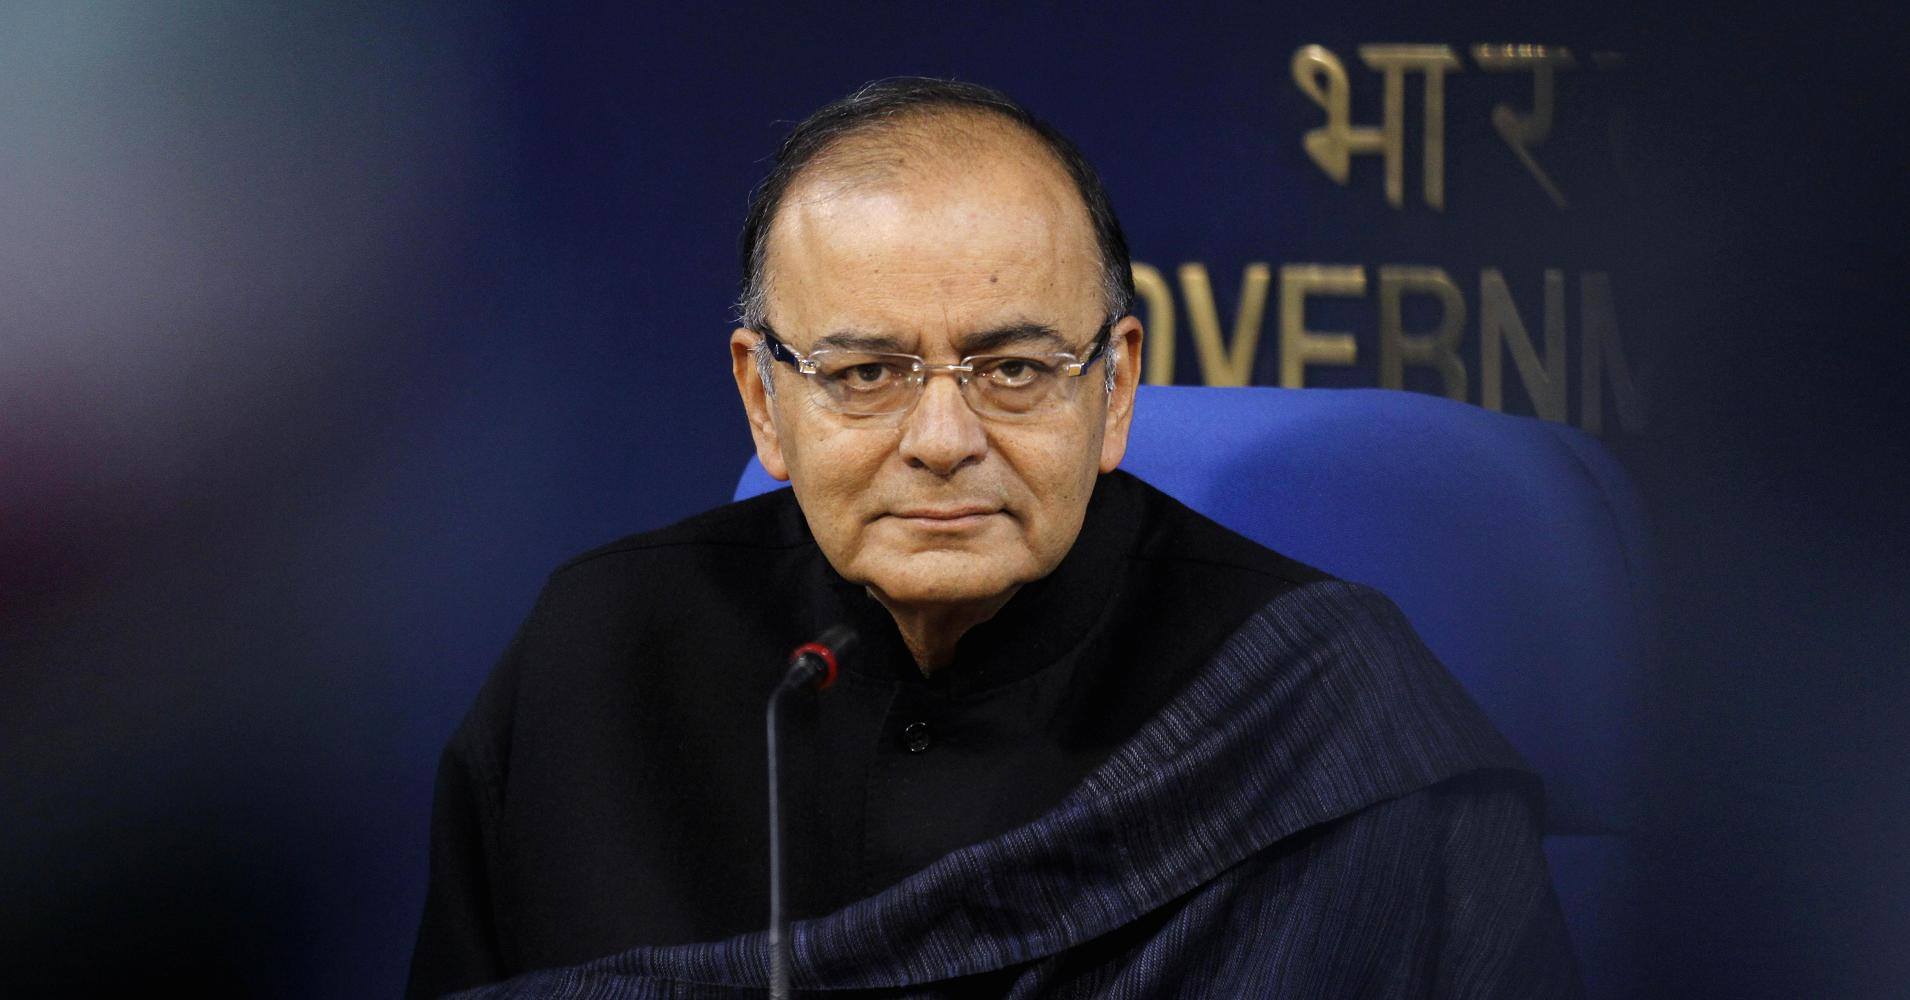 From ABVP activist to finance minister, know different shades of Arun Jaitley's political journey